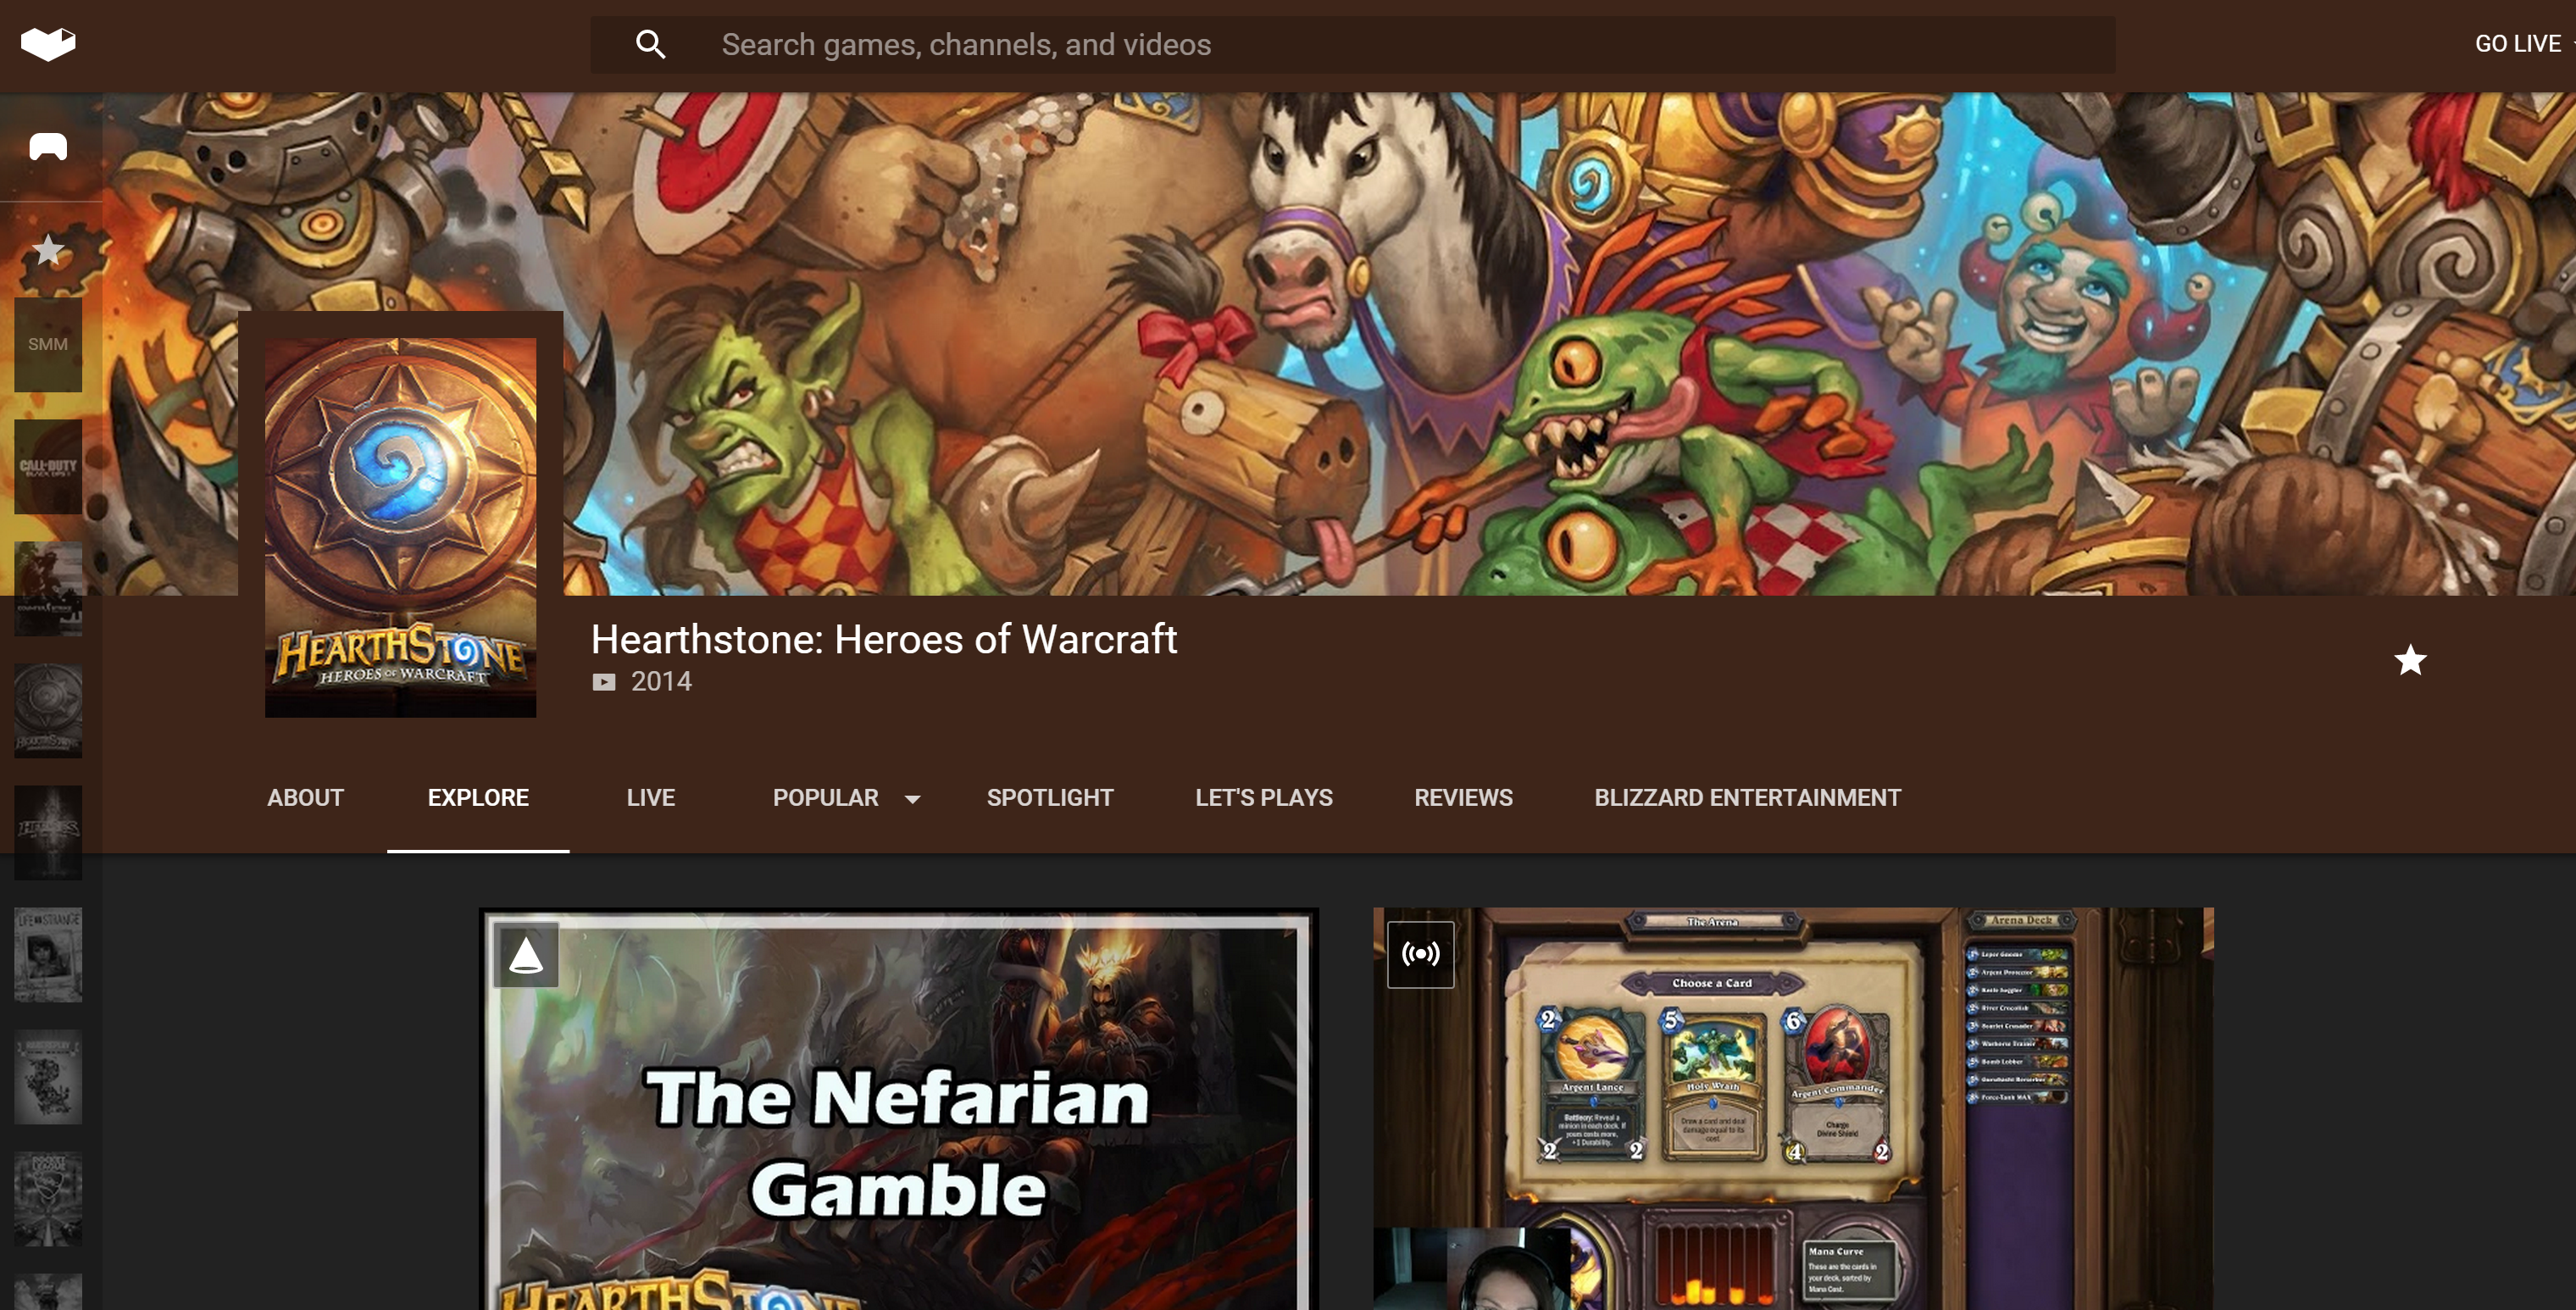 The Hearthstone hub page on YouTube Gaming.